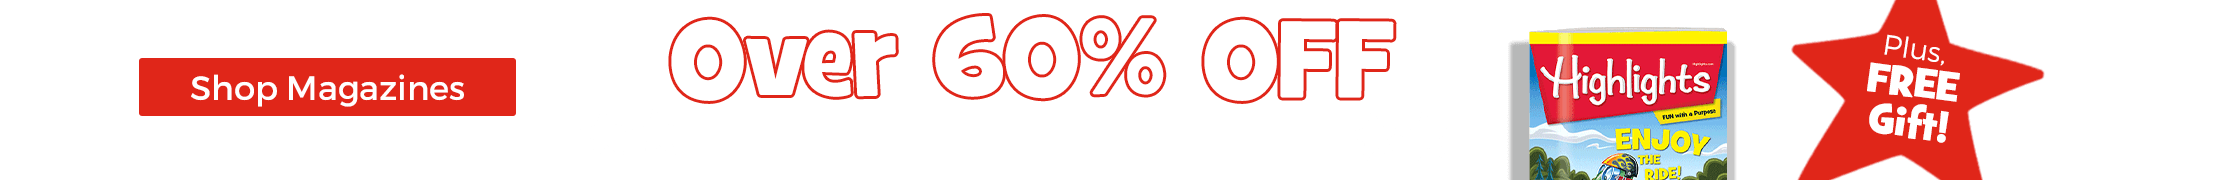 Save over 60% on award-winning magazines, plus get a free gift!